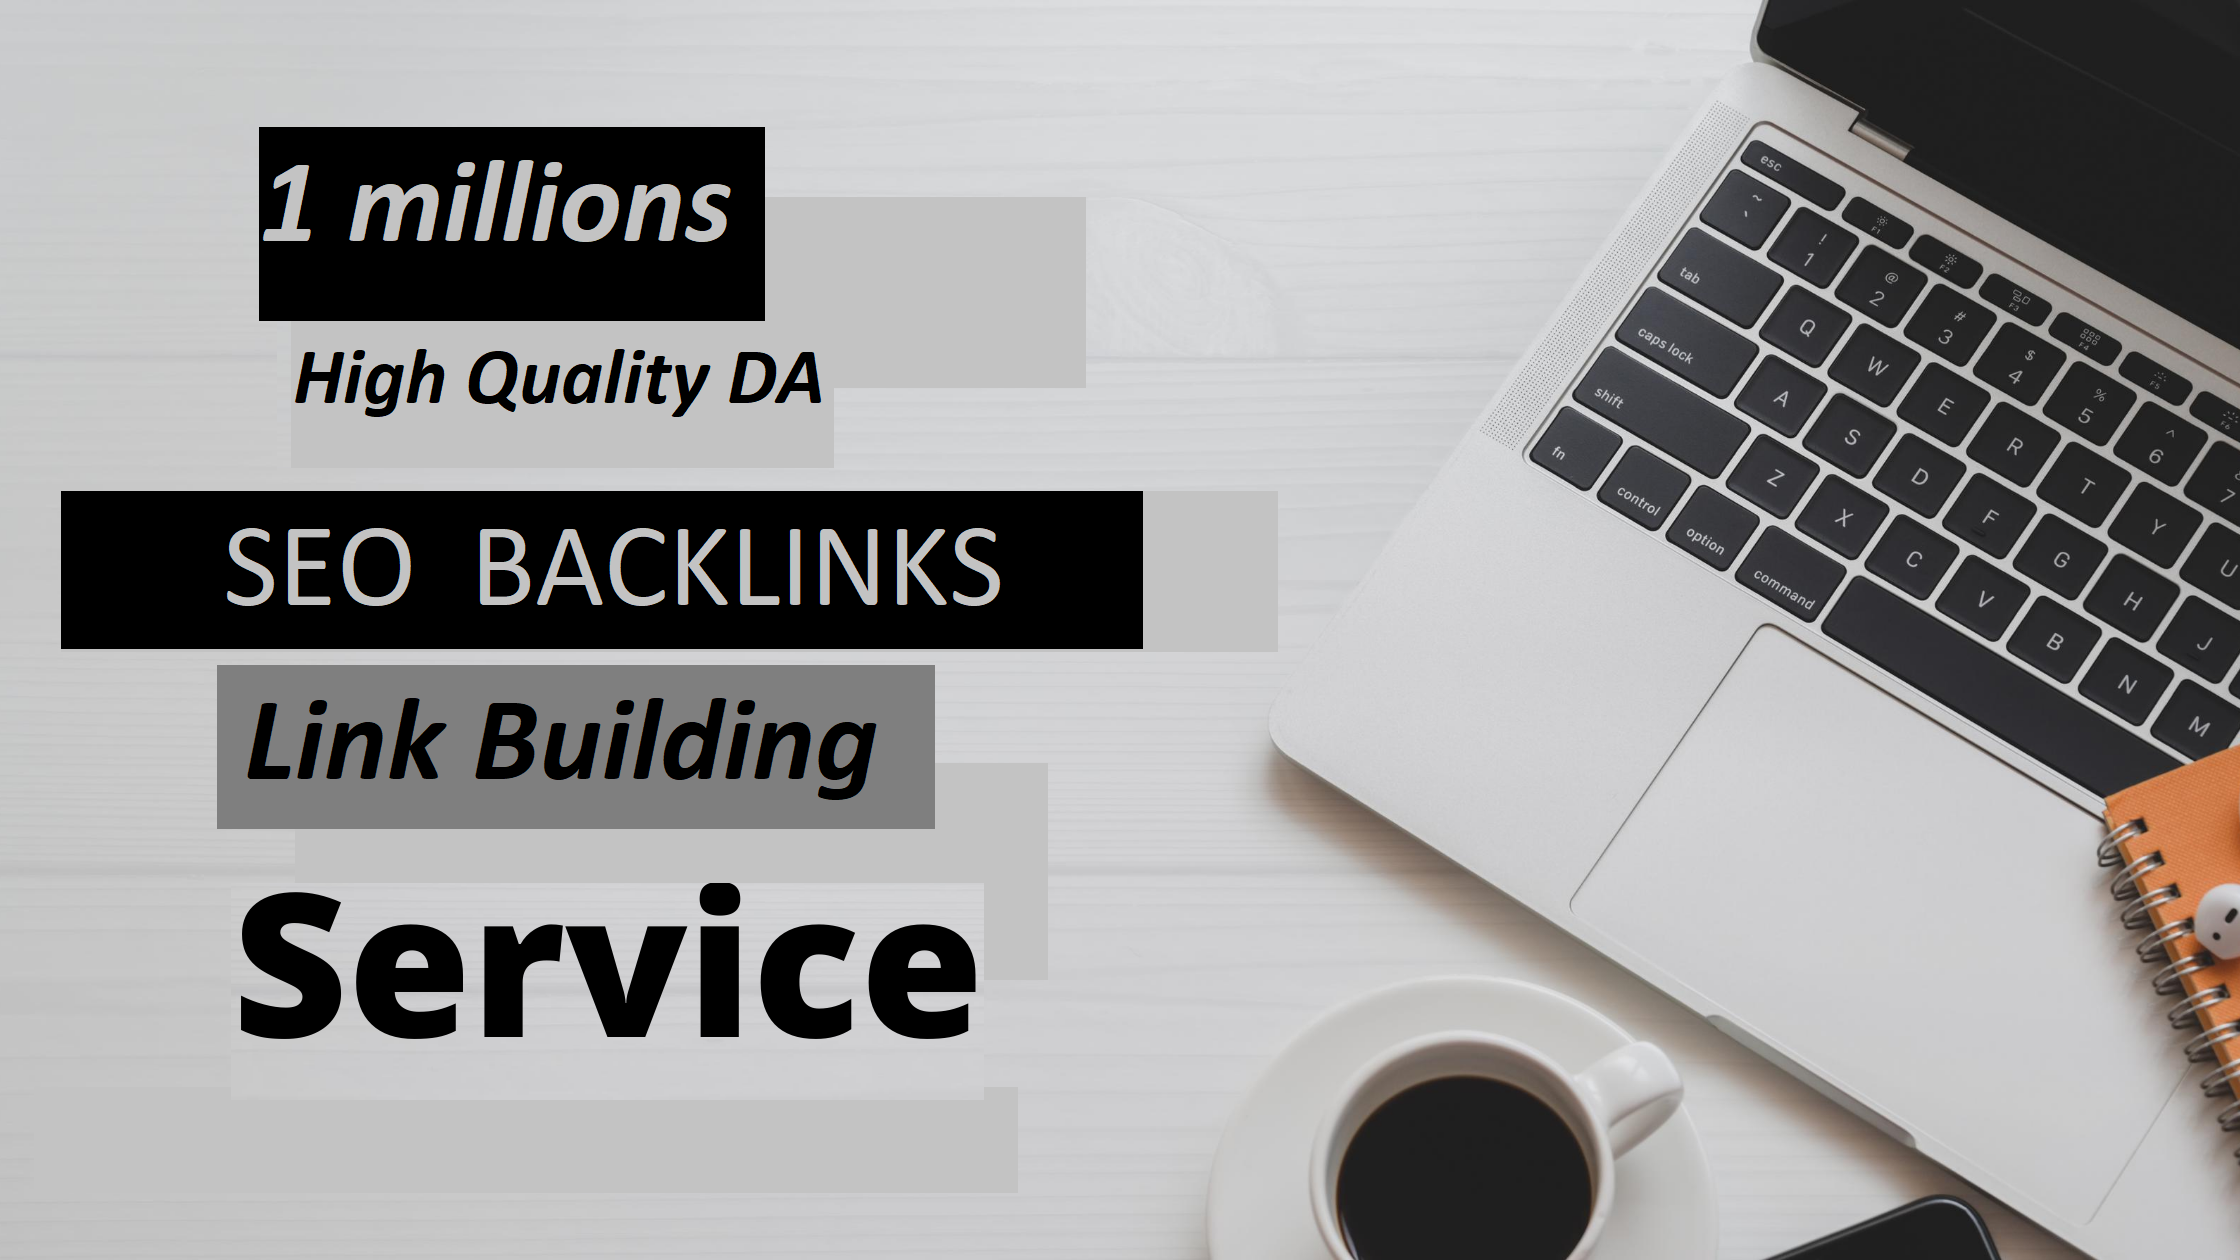 I will build 1 millions high quality dofollow SEO backlinks link building google ranking